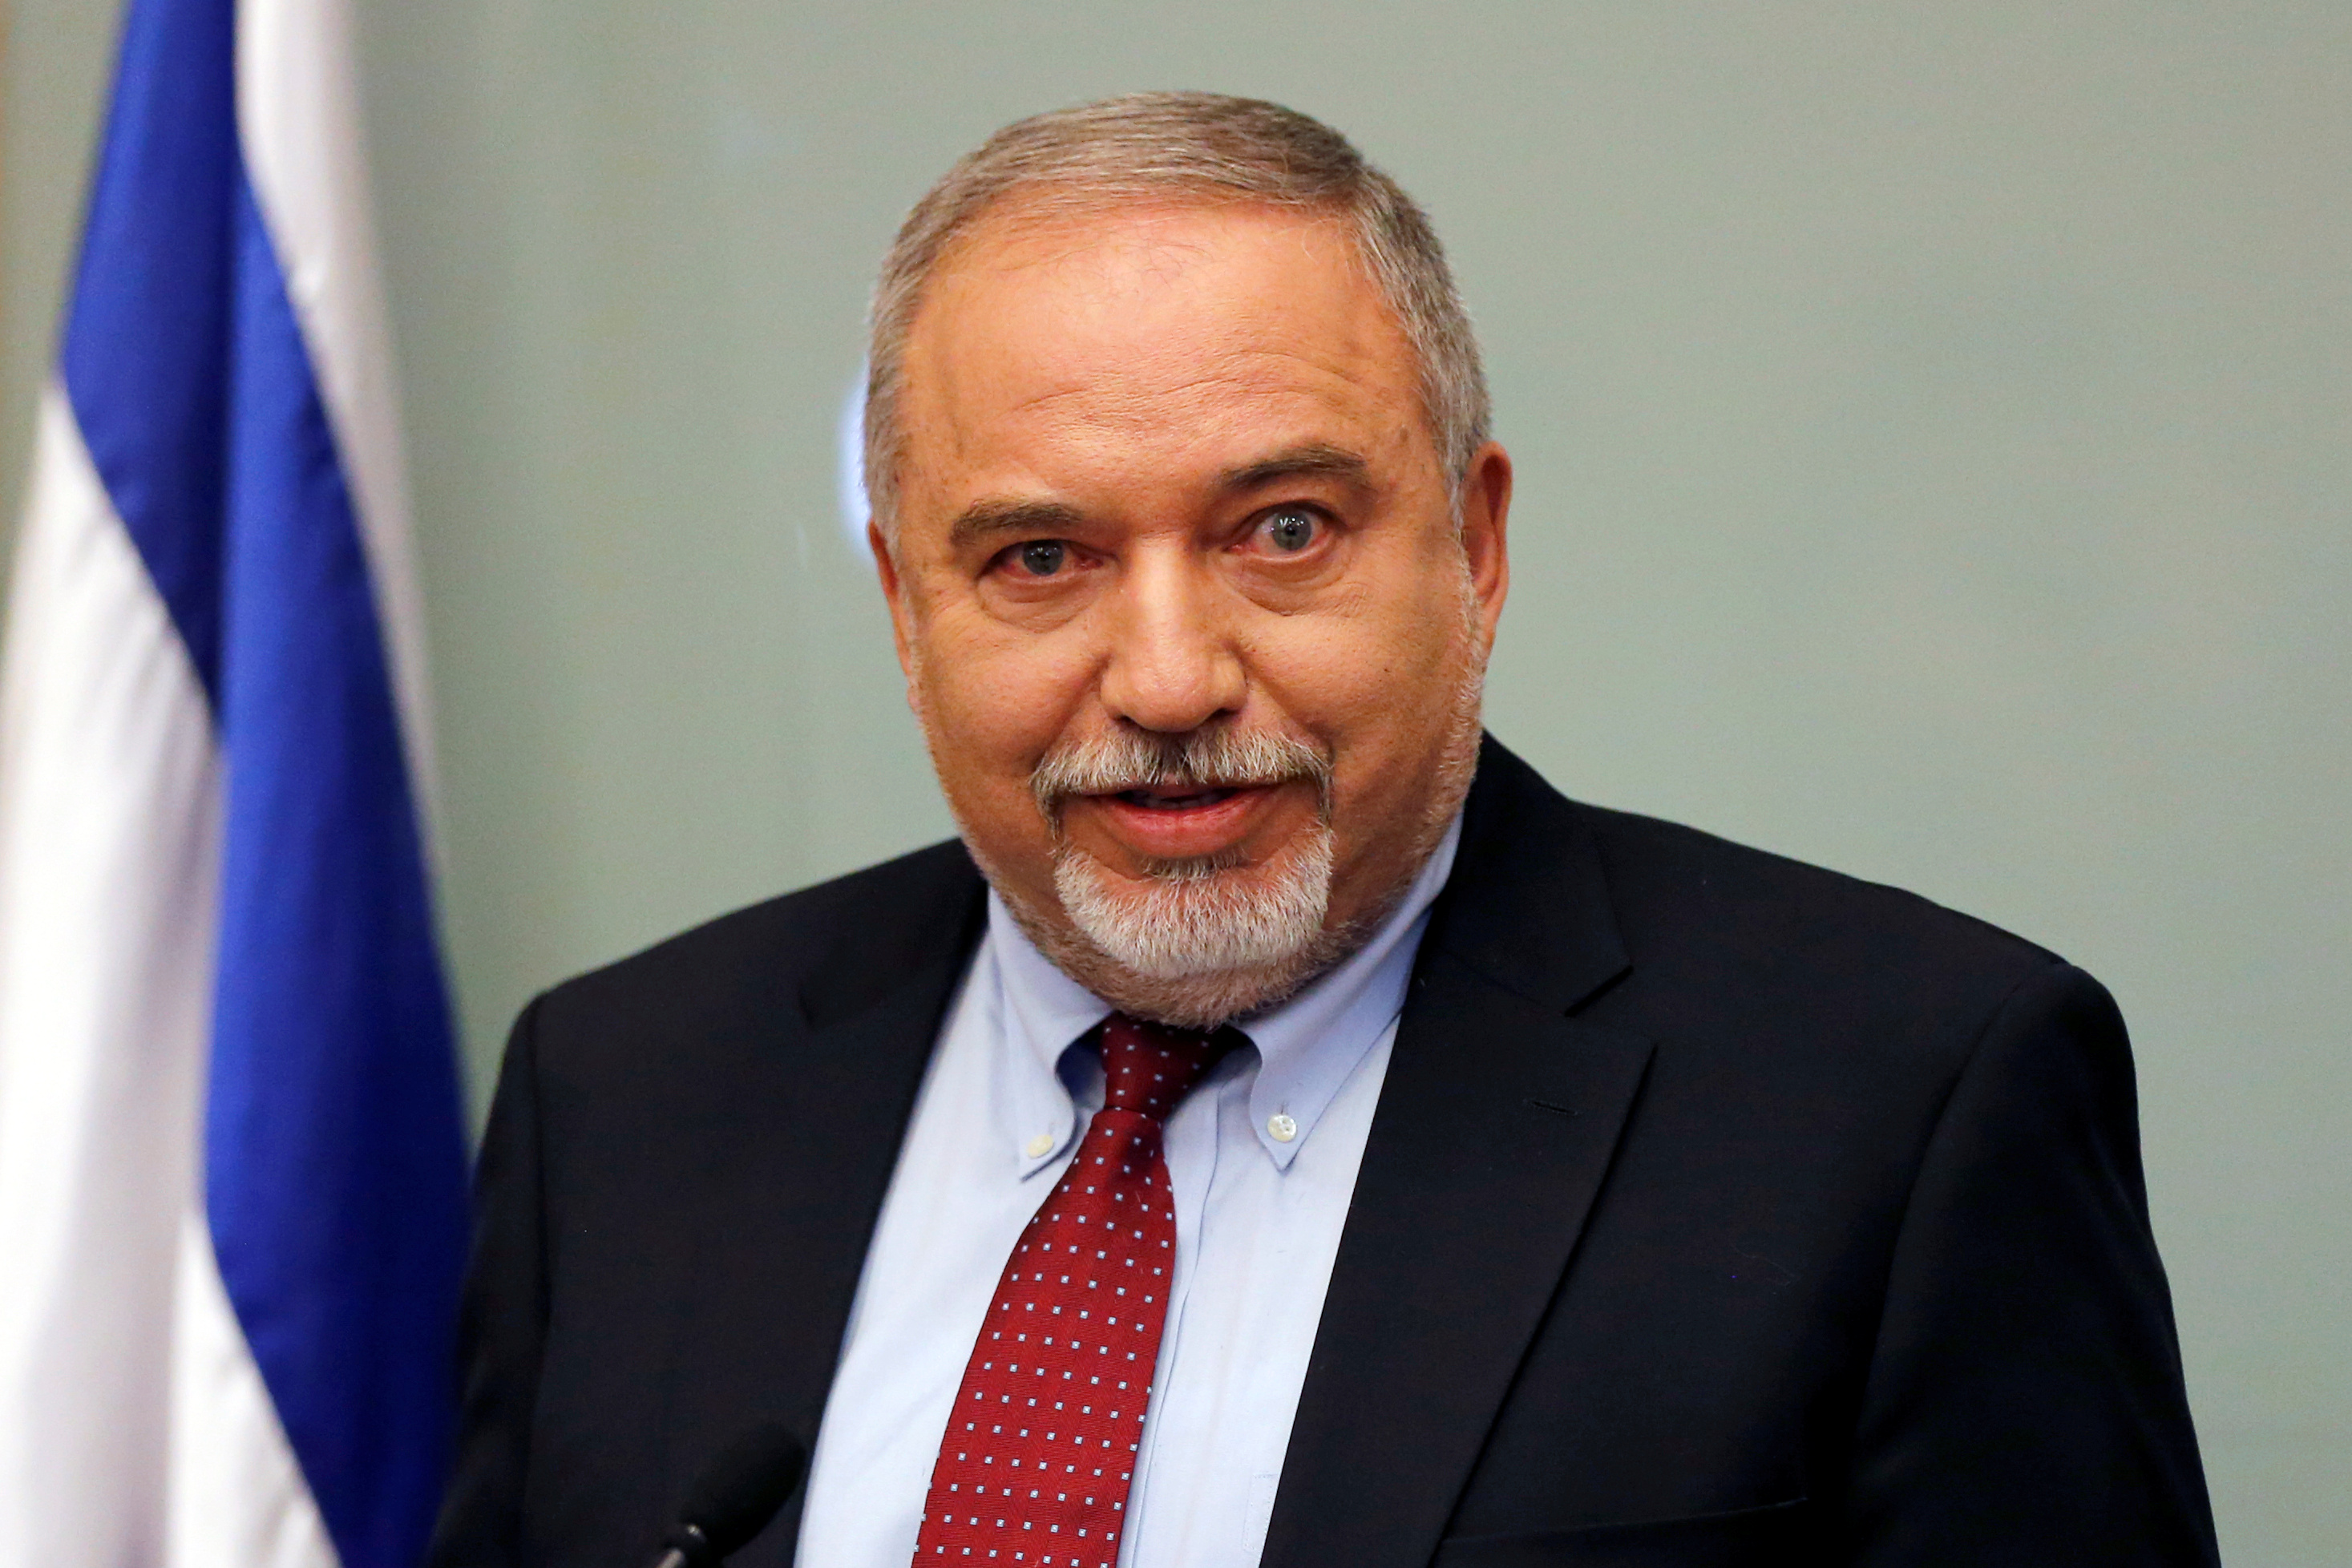 Israel's Defence Minister Avigdor Lieberman delivers a statement to the media following his party, Yisrael Beitenu, faction meting at the Knesset, Israel's parliament, in Jerusalem November 14, 2018. REUTERS/Ammar Awad